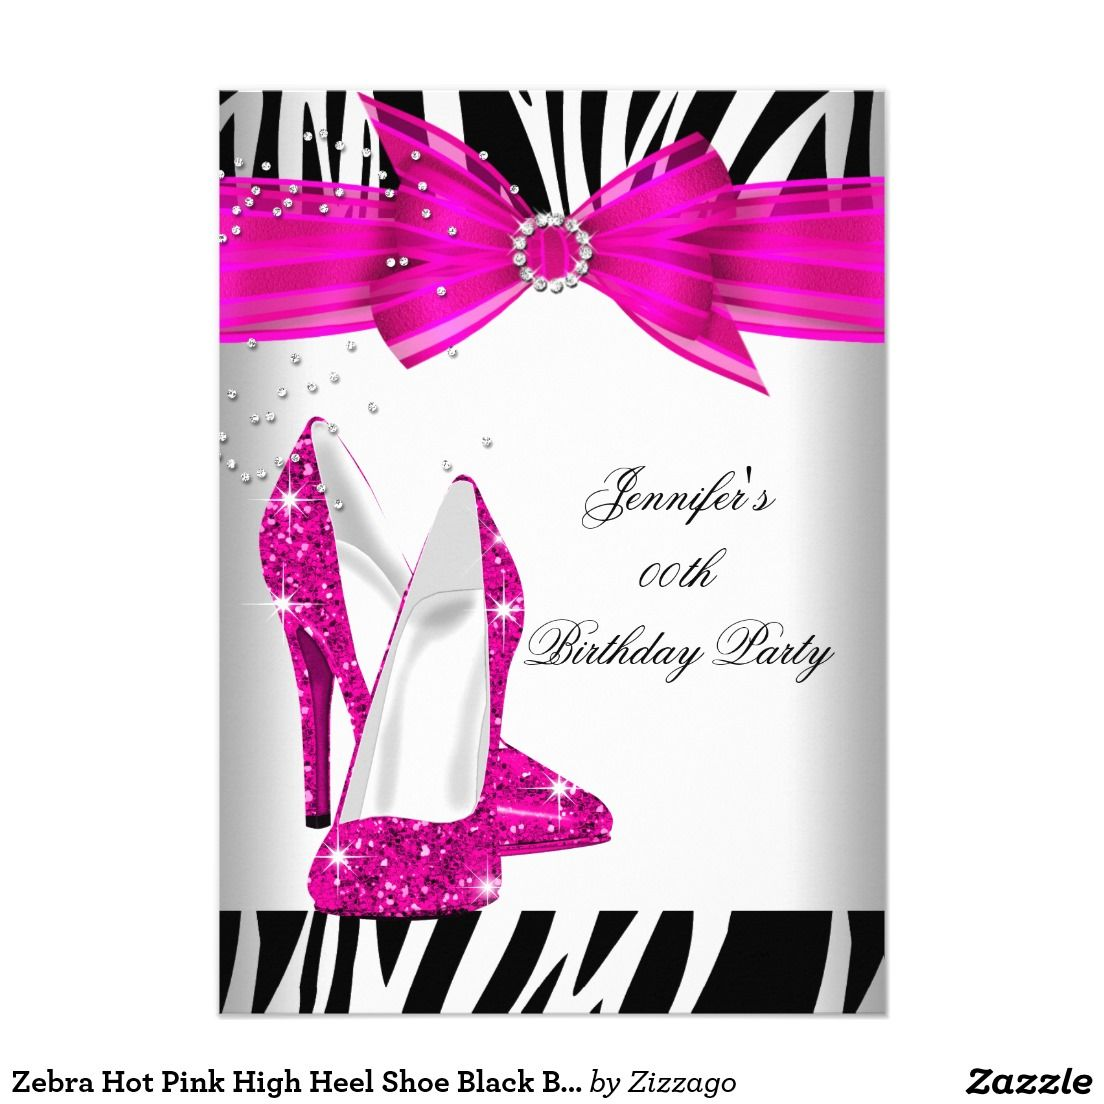 Zebra Hot Pink High Heel Shoe Black Birthday Party Card | Party ...